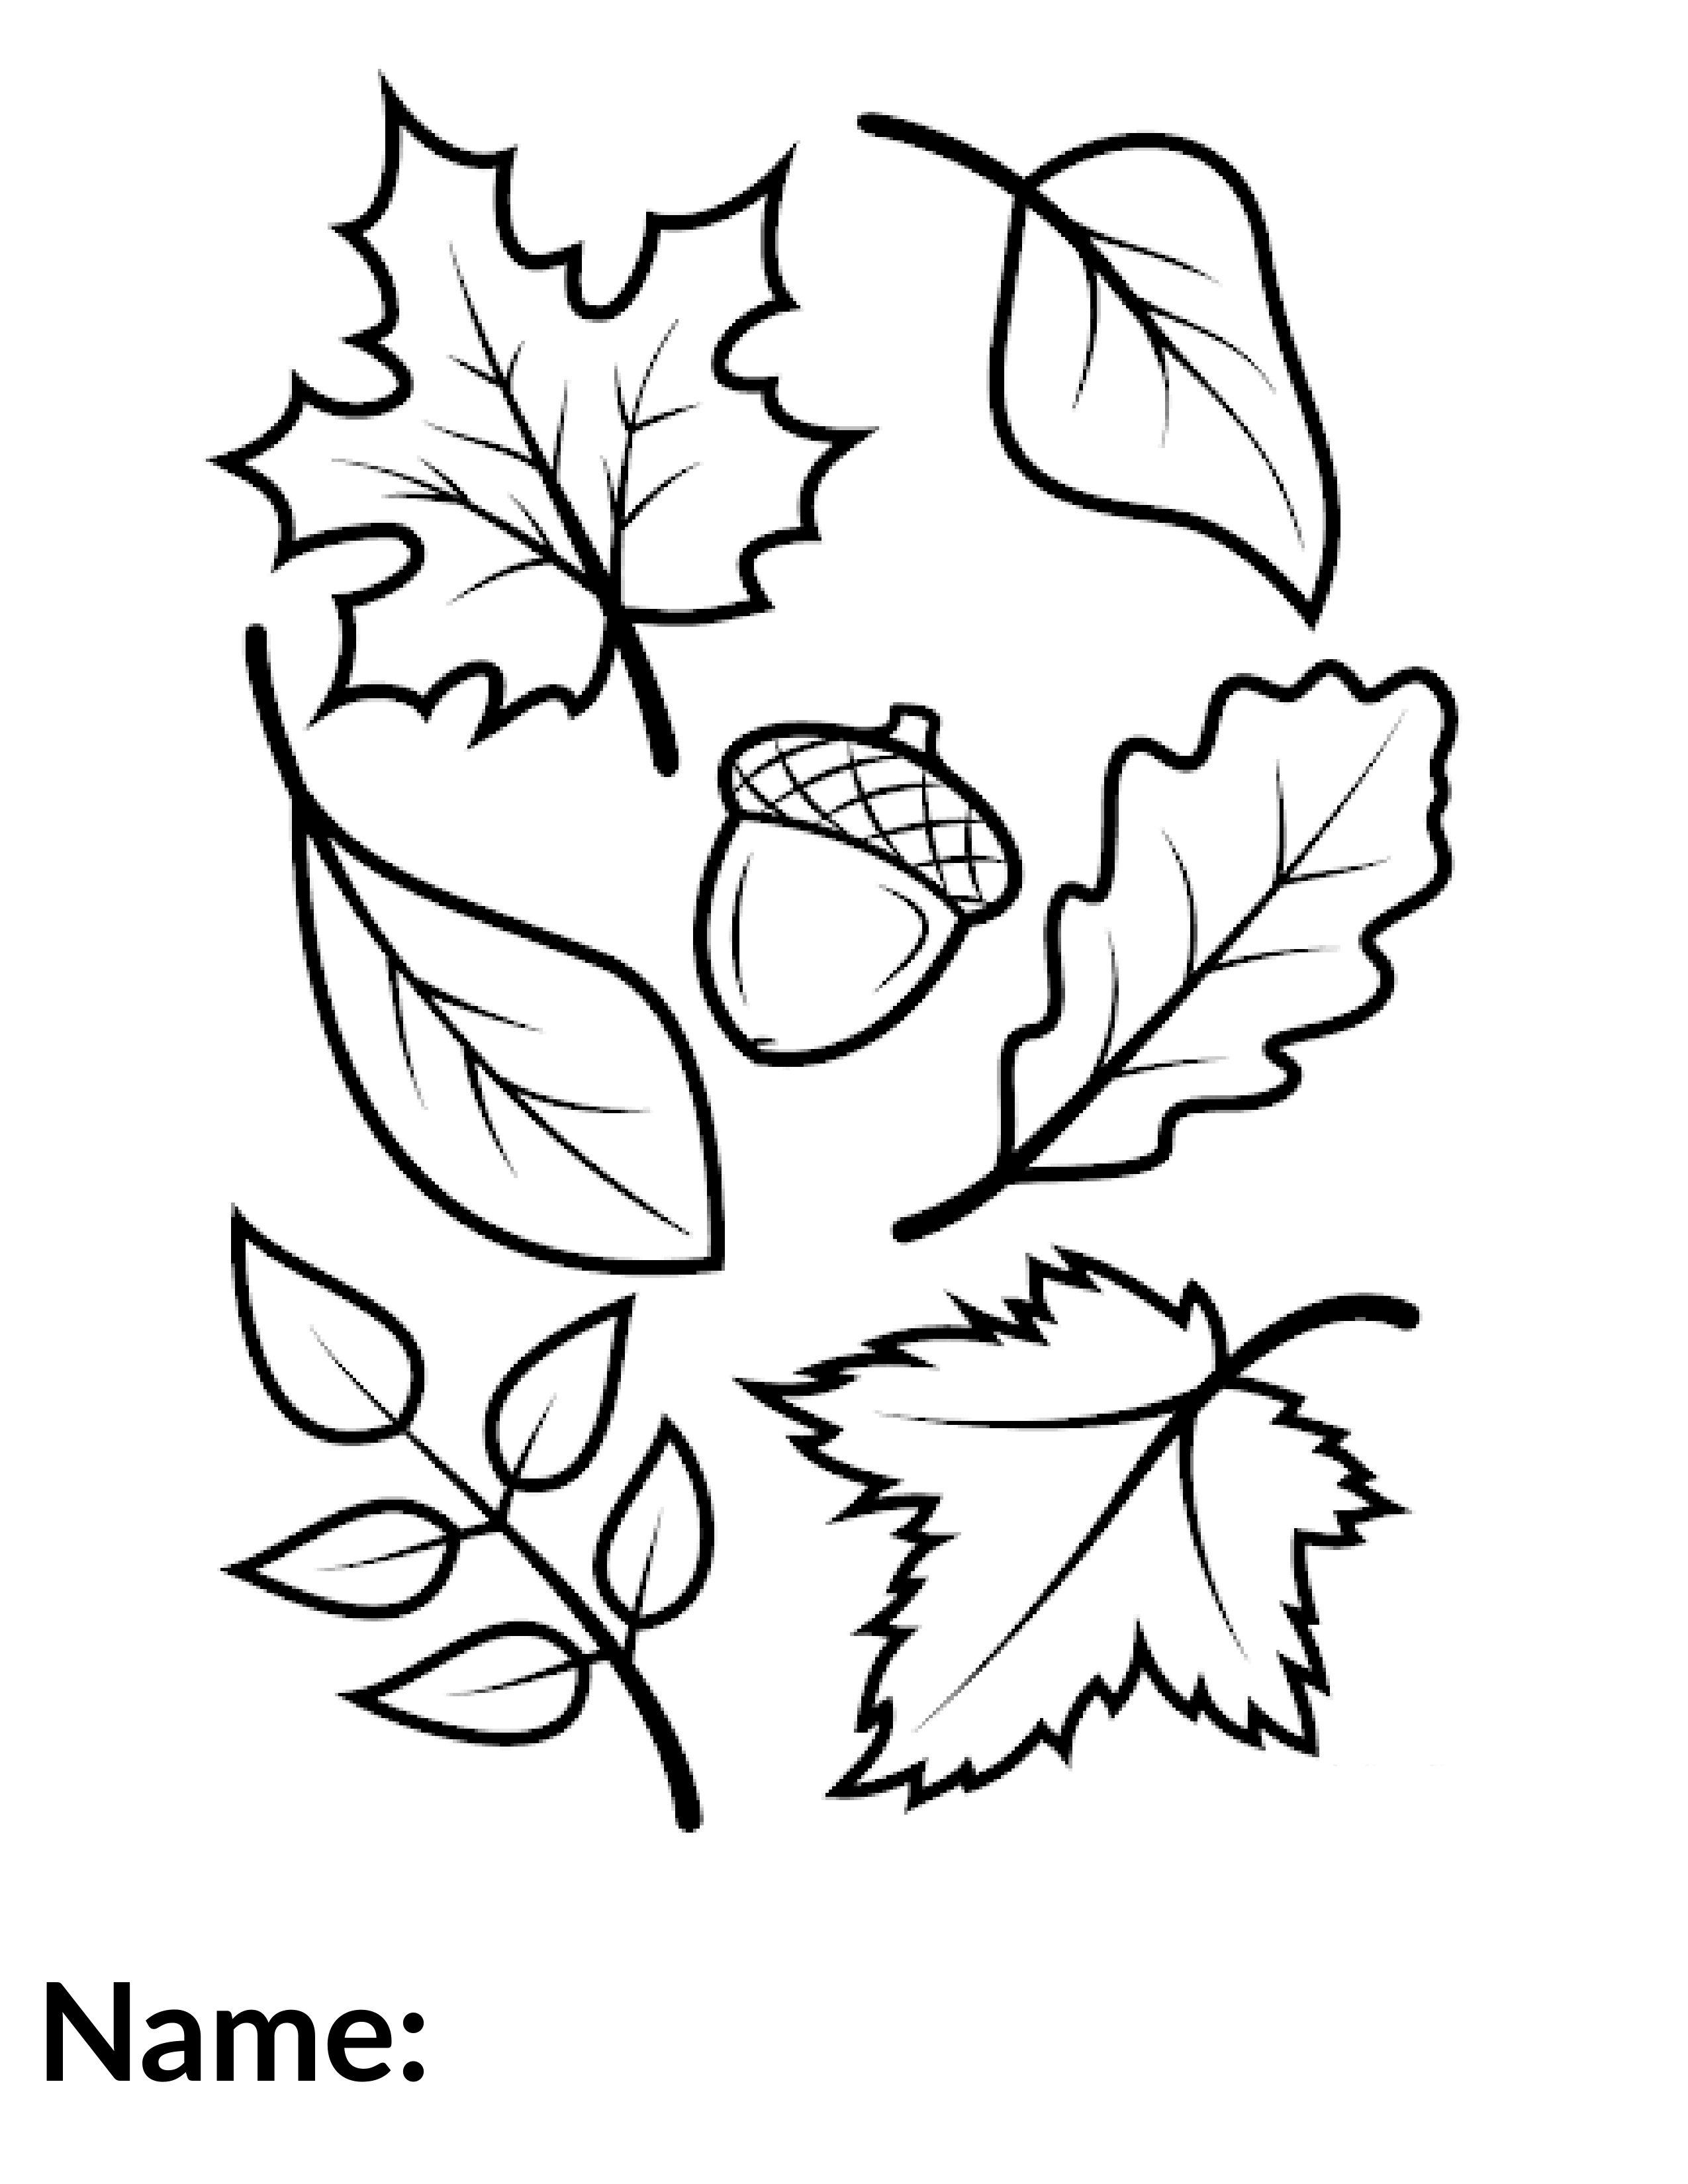 2020 Leaves - Coloring Contest